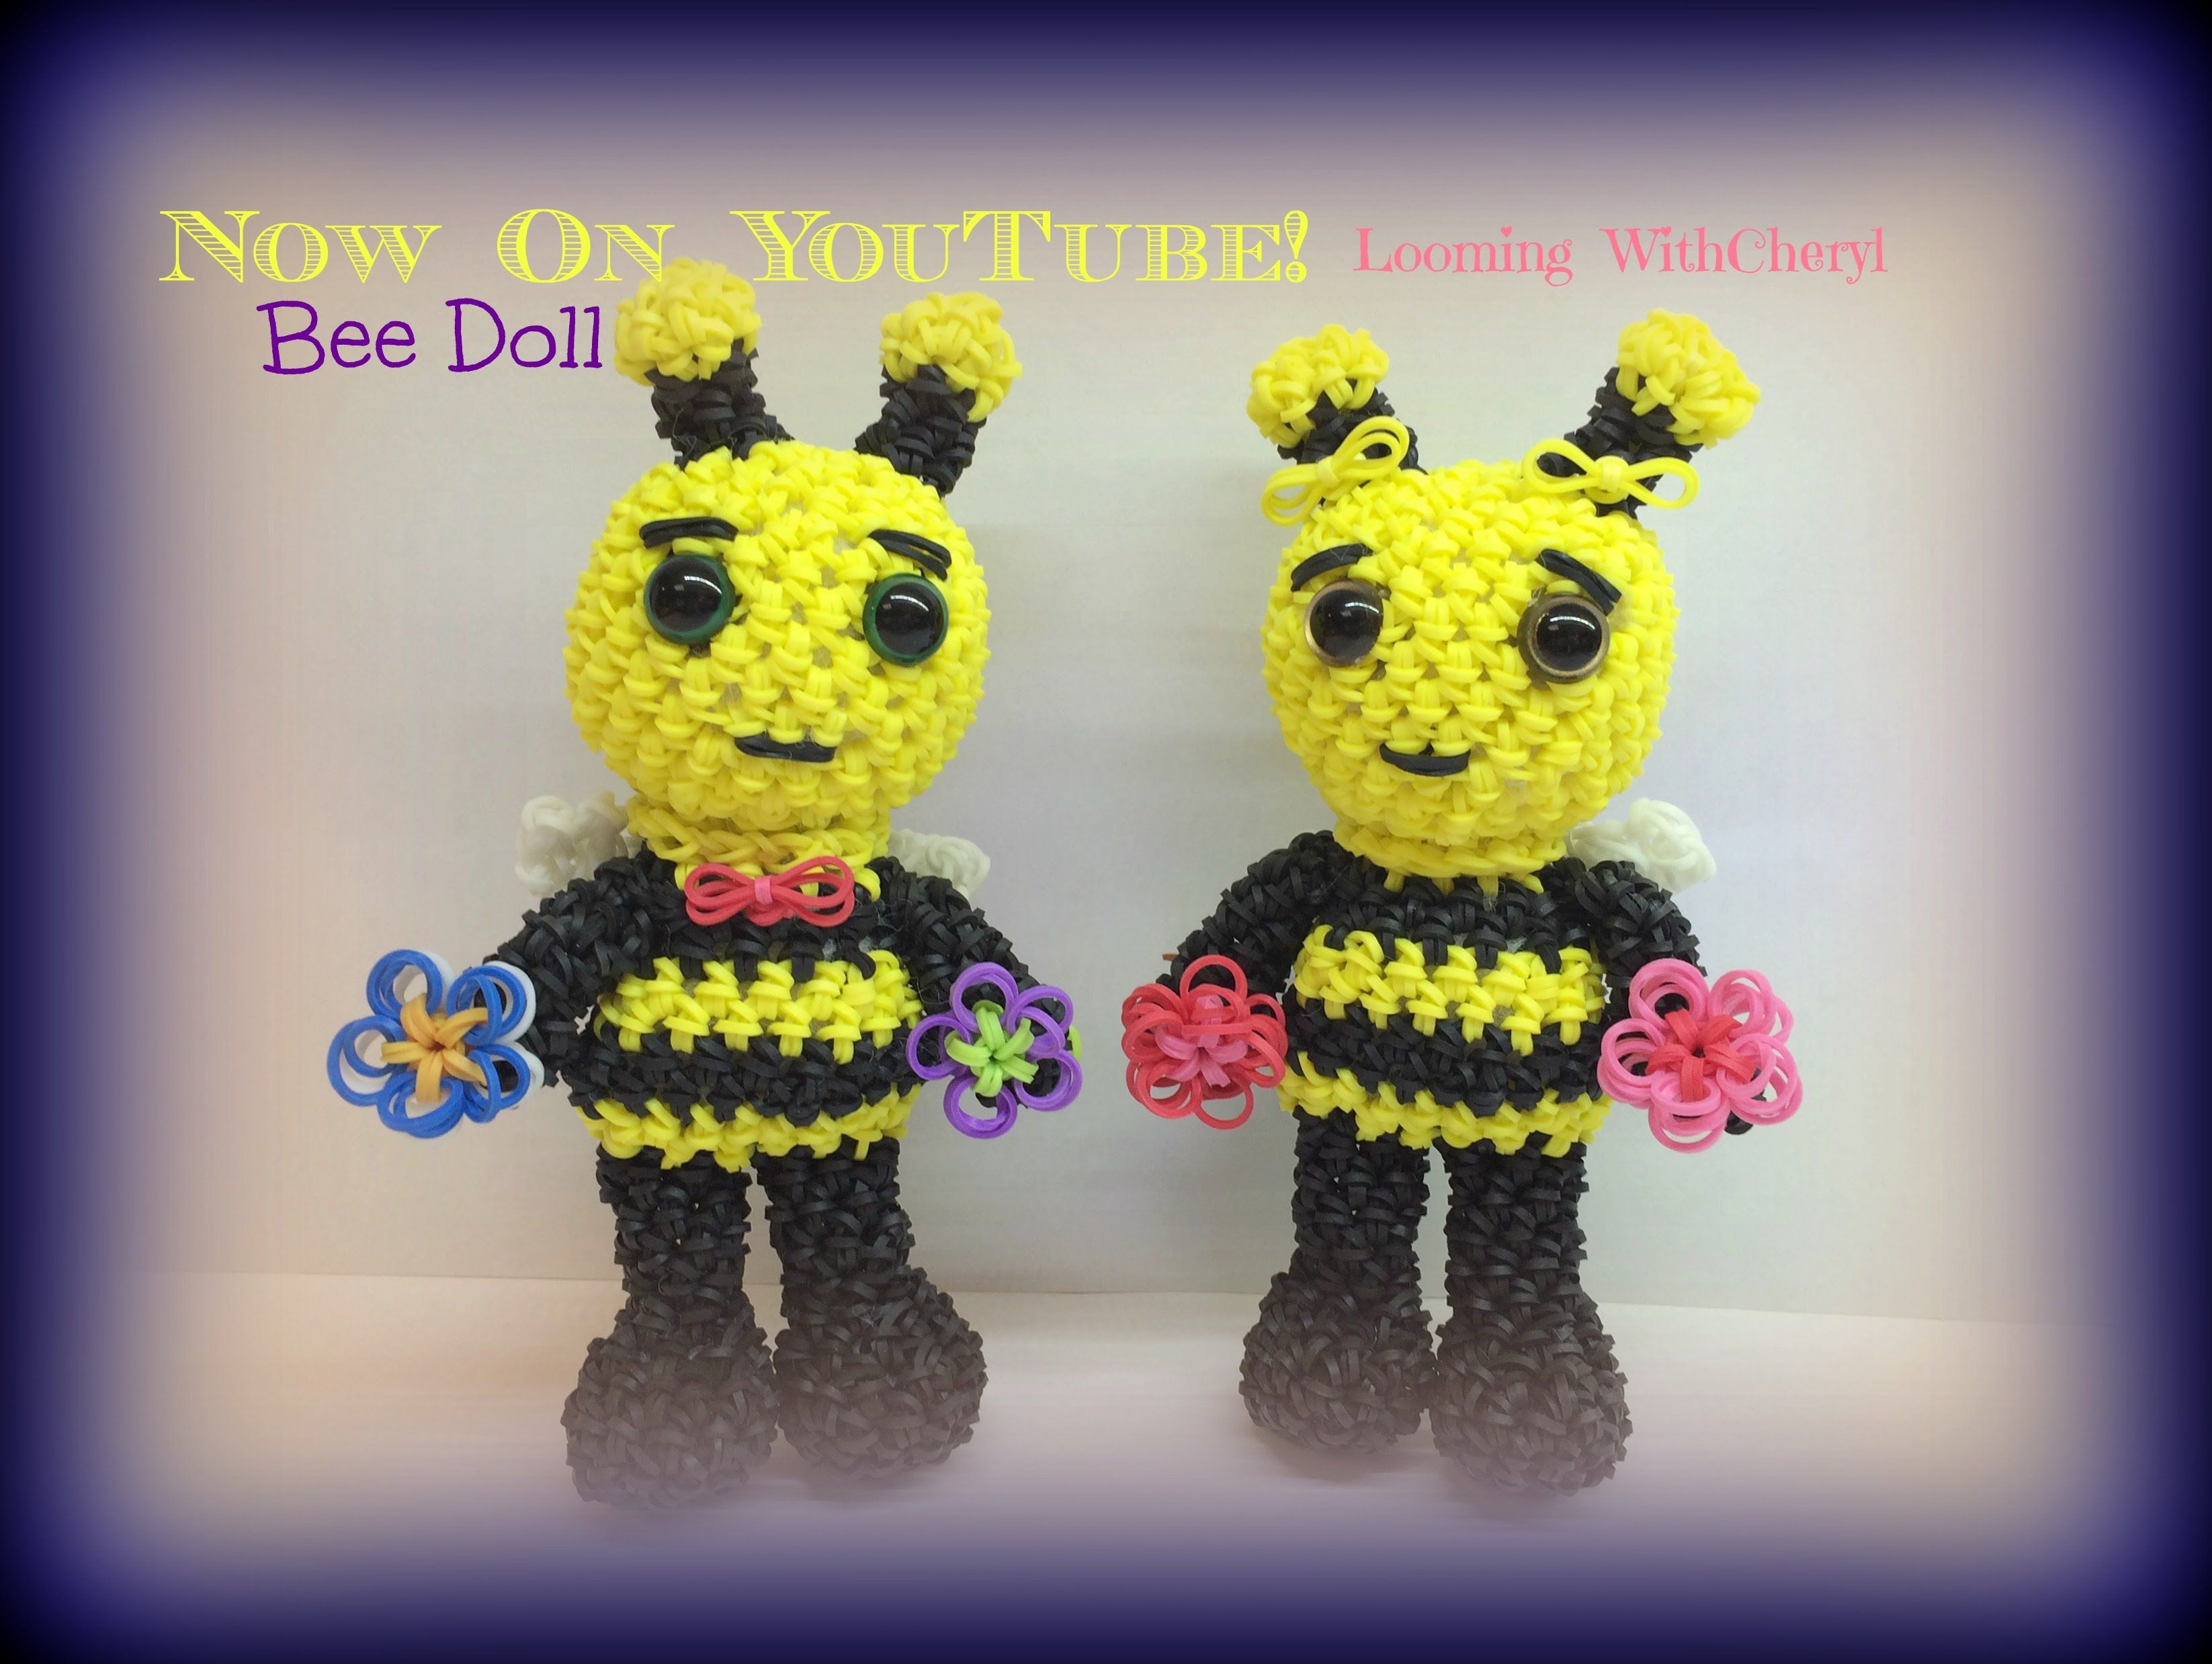 Amigurumi Loom Patterns : Rainbow loom bee doll loomigurumi amigurumi hook only пчела